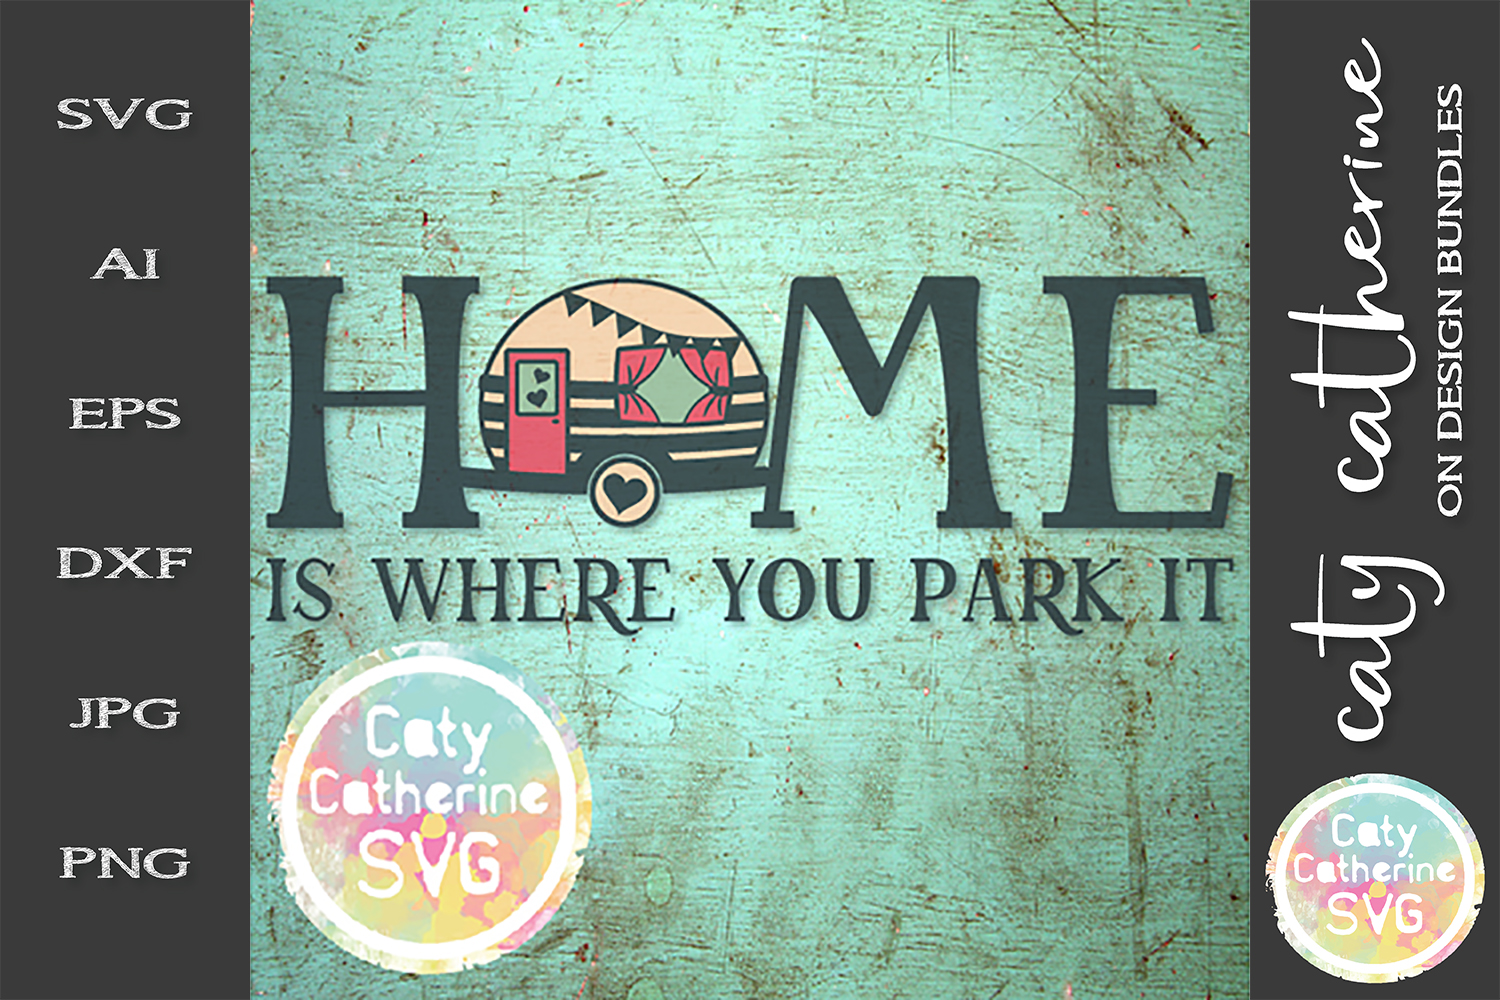 Home Is Where You Park It Caravan Camping SVG Cut File example image 1